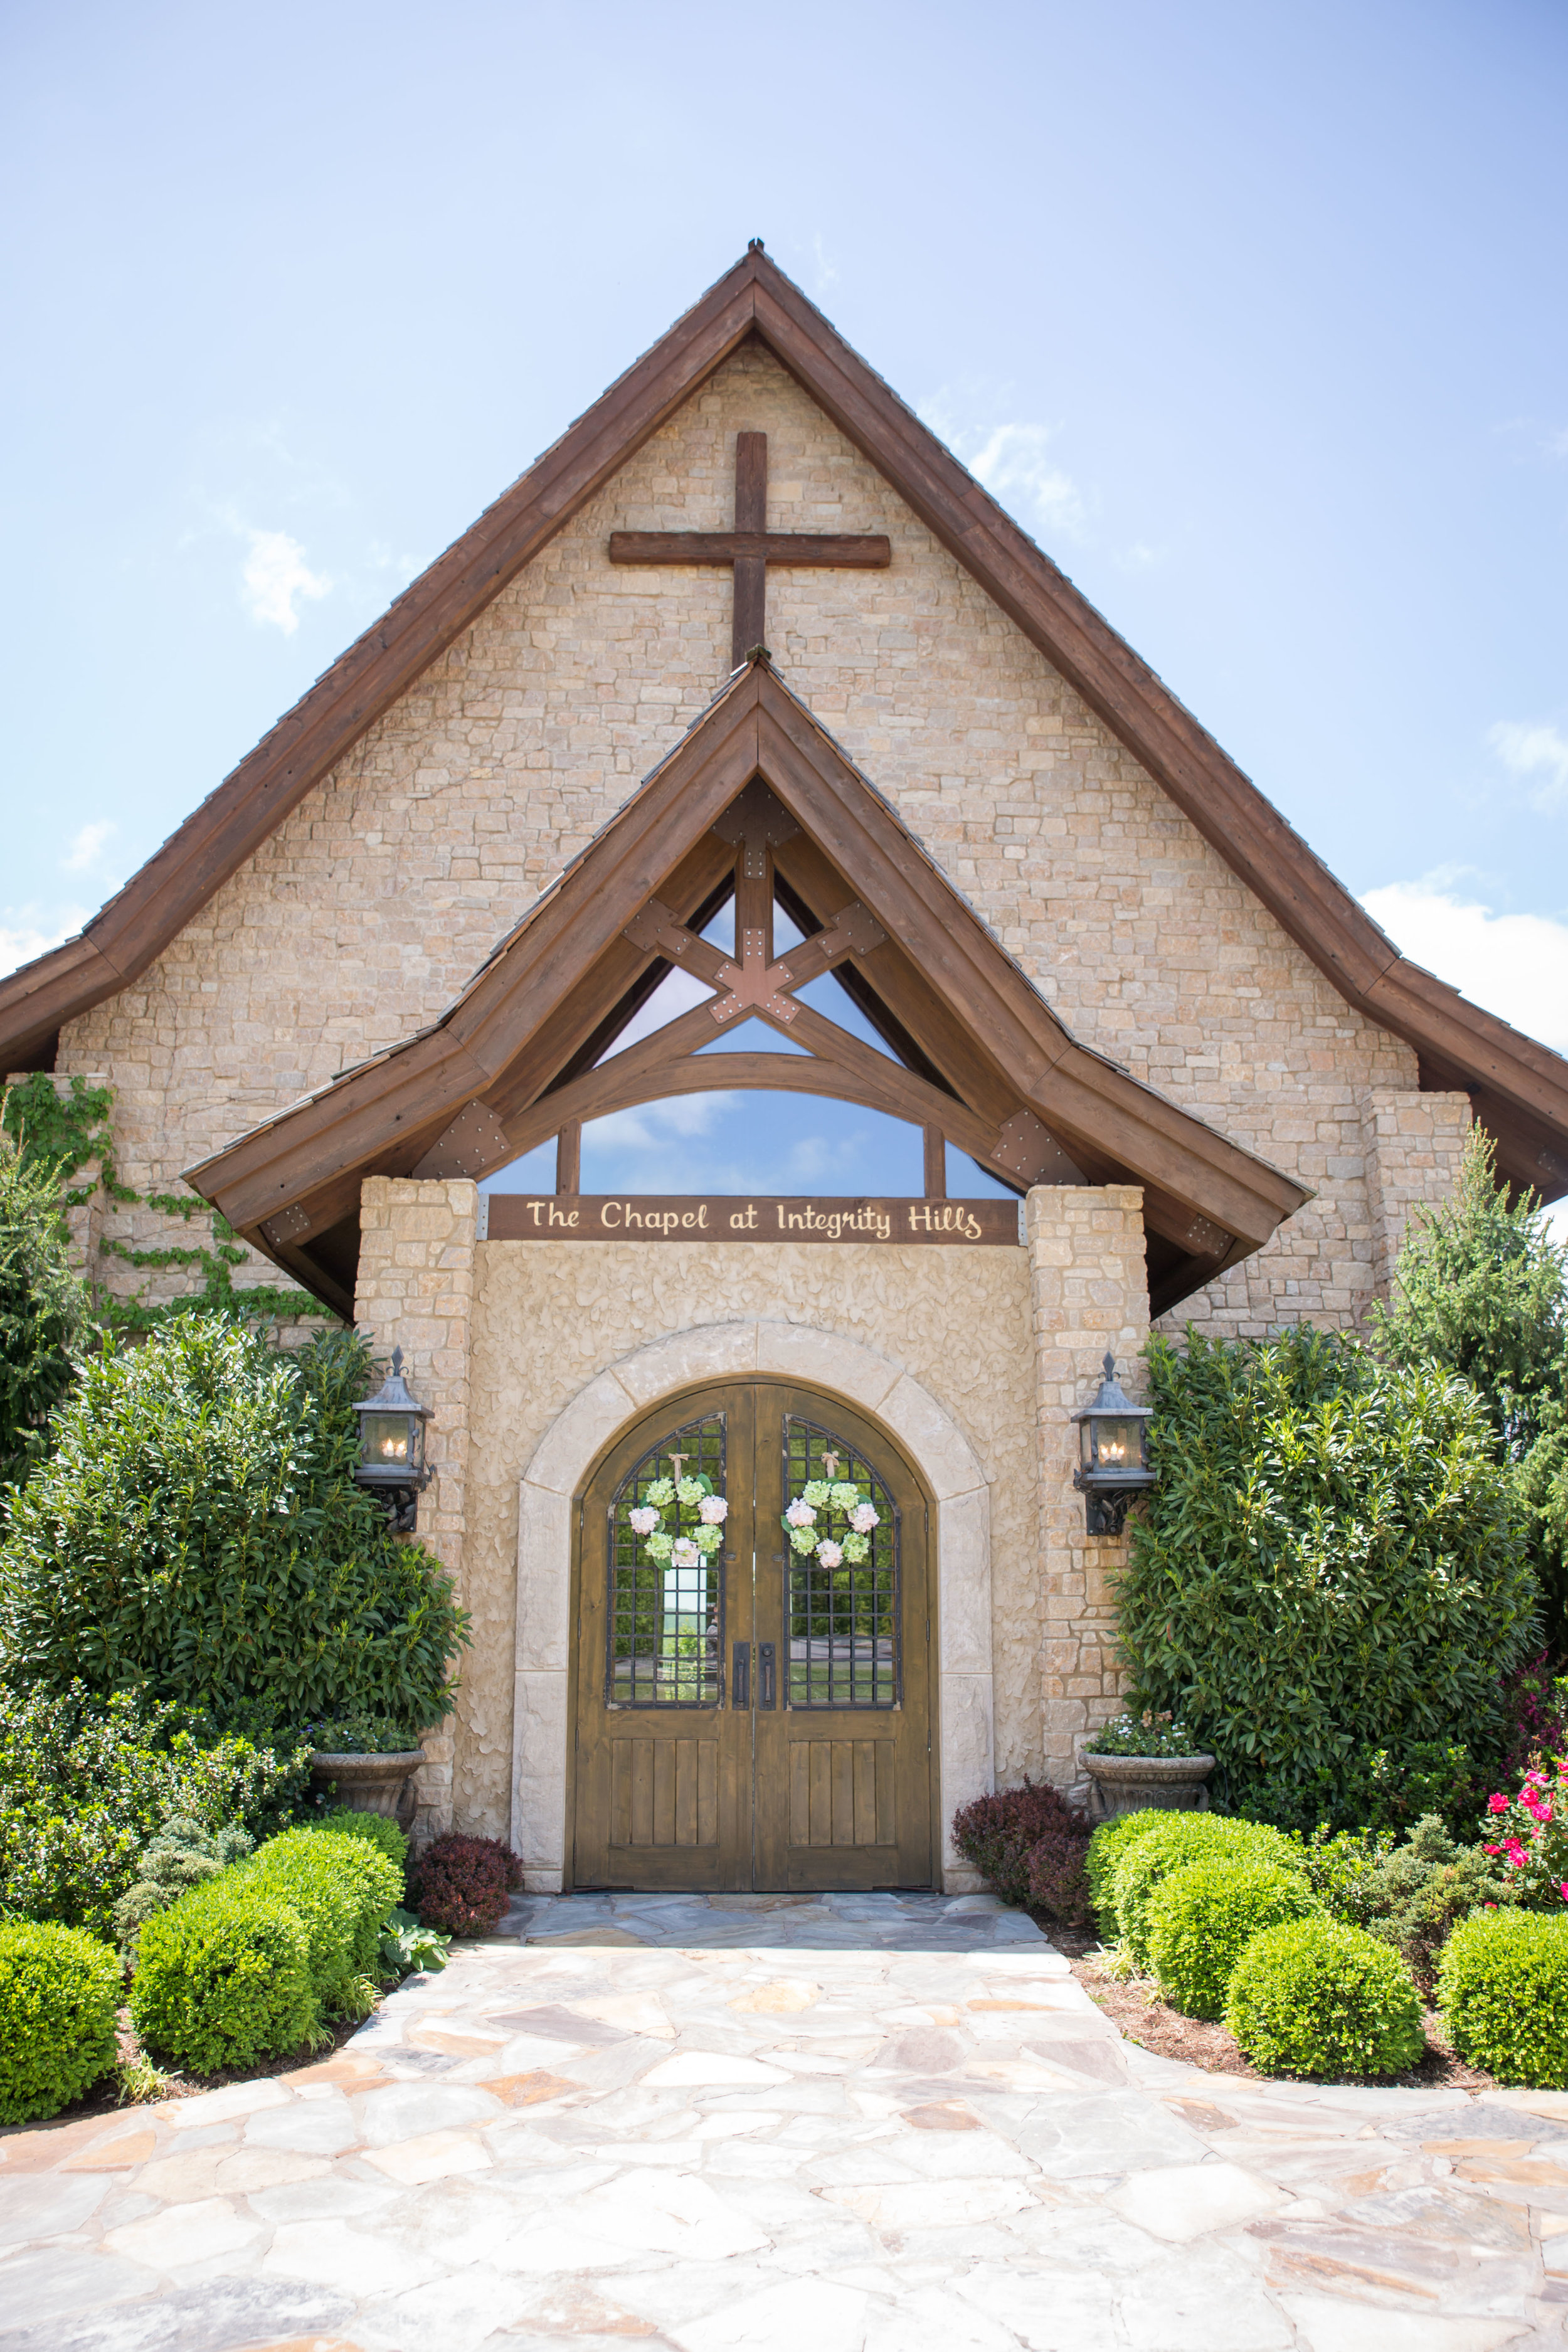 The chapel at Integrity Hills